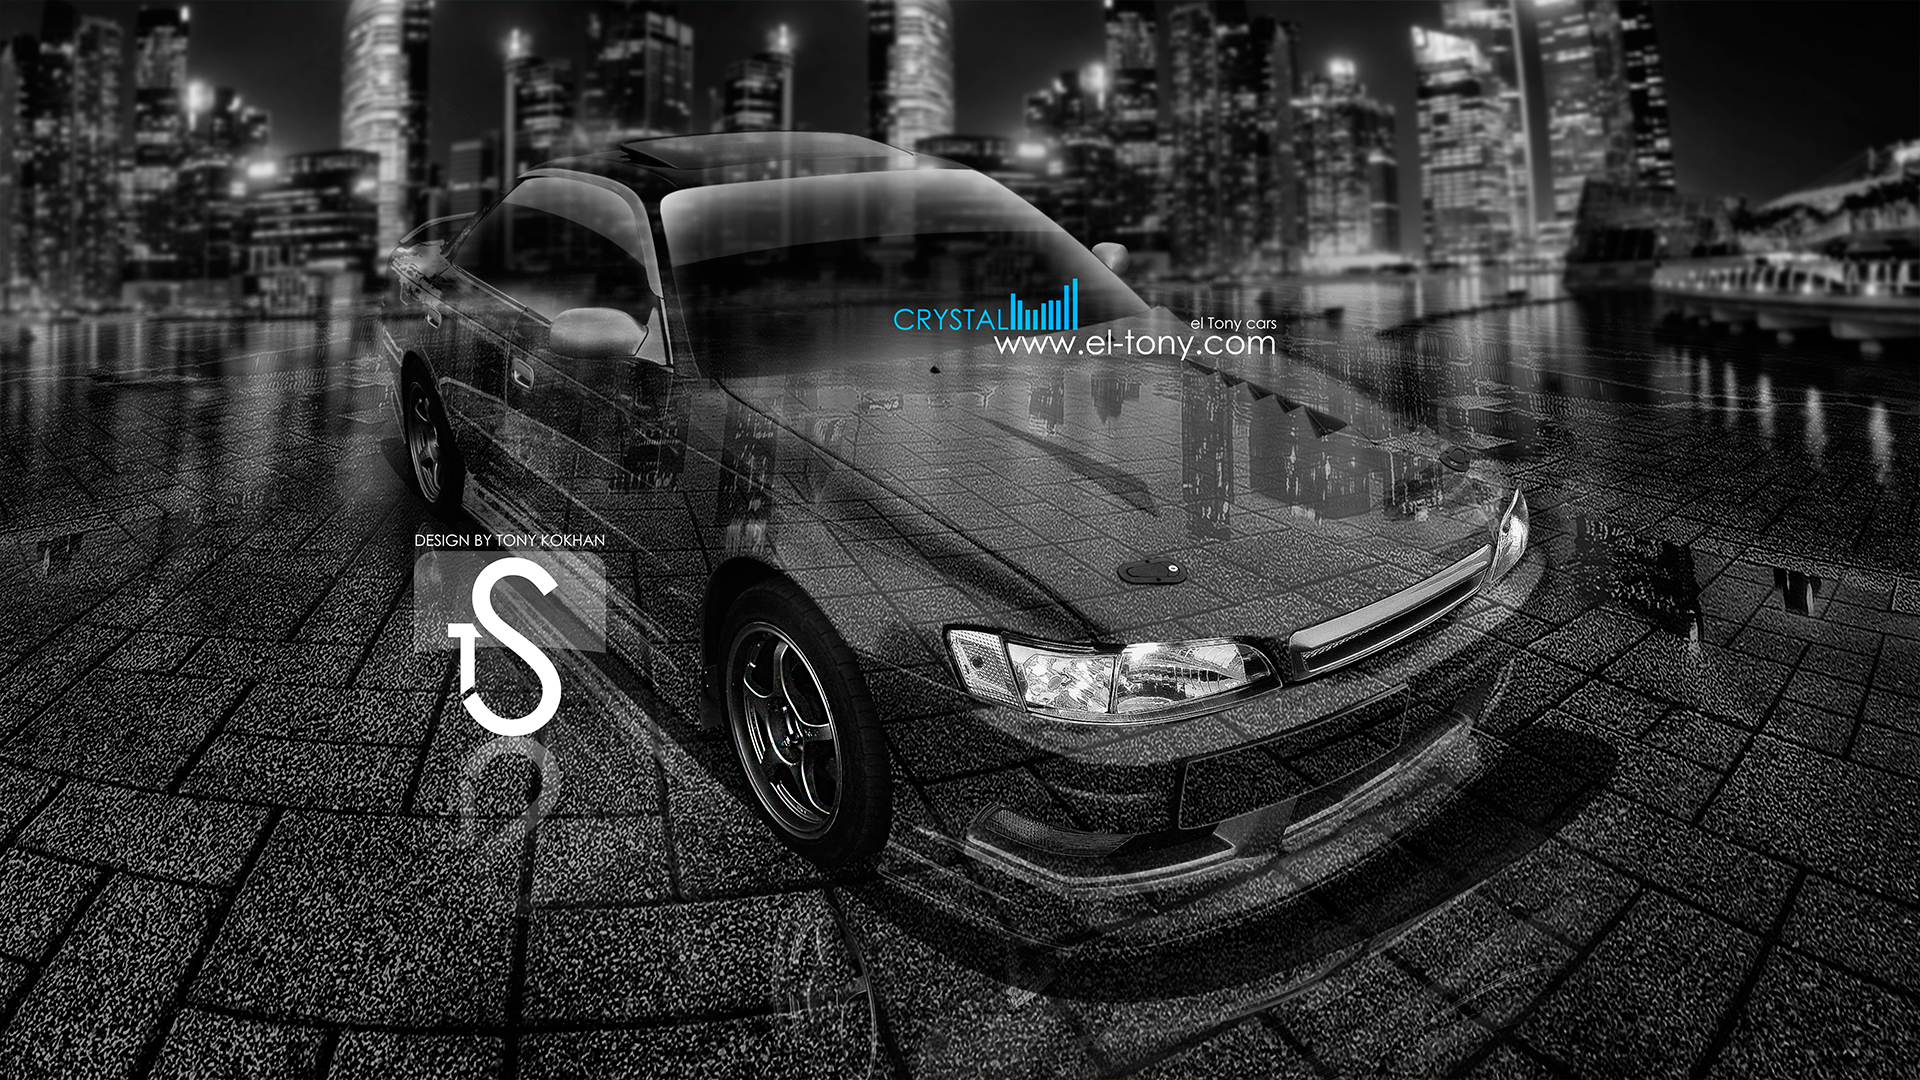 Marvelous Toyota Mark 2 JZX90 JDM Crystal Car 2013 City Style  HD Wallpapers Design By Tony Kokhan [www.el Tony.com]